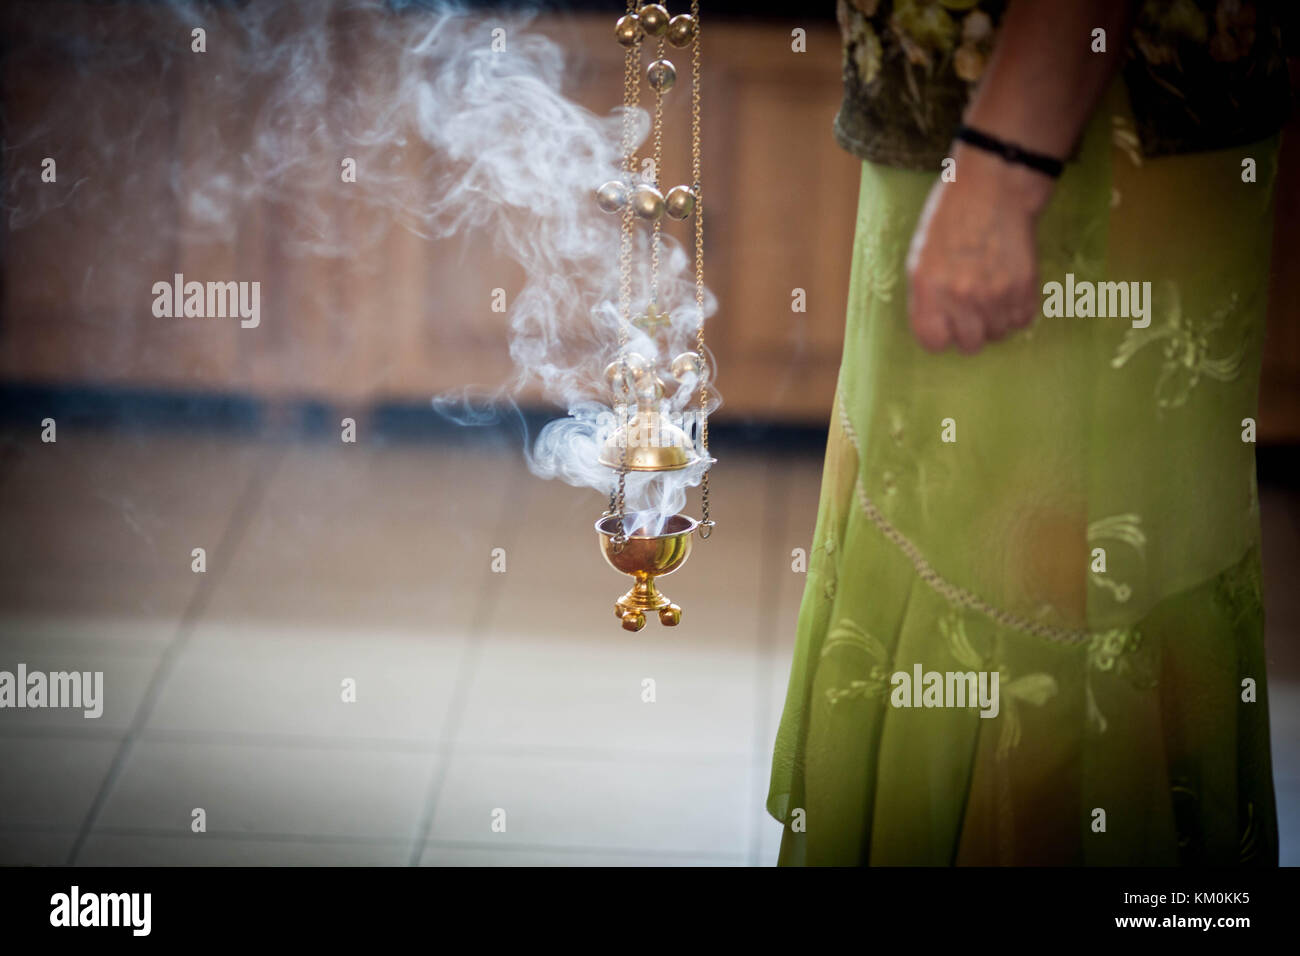 The woman holding the incense - Stock Image